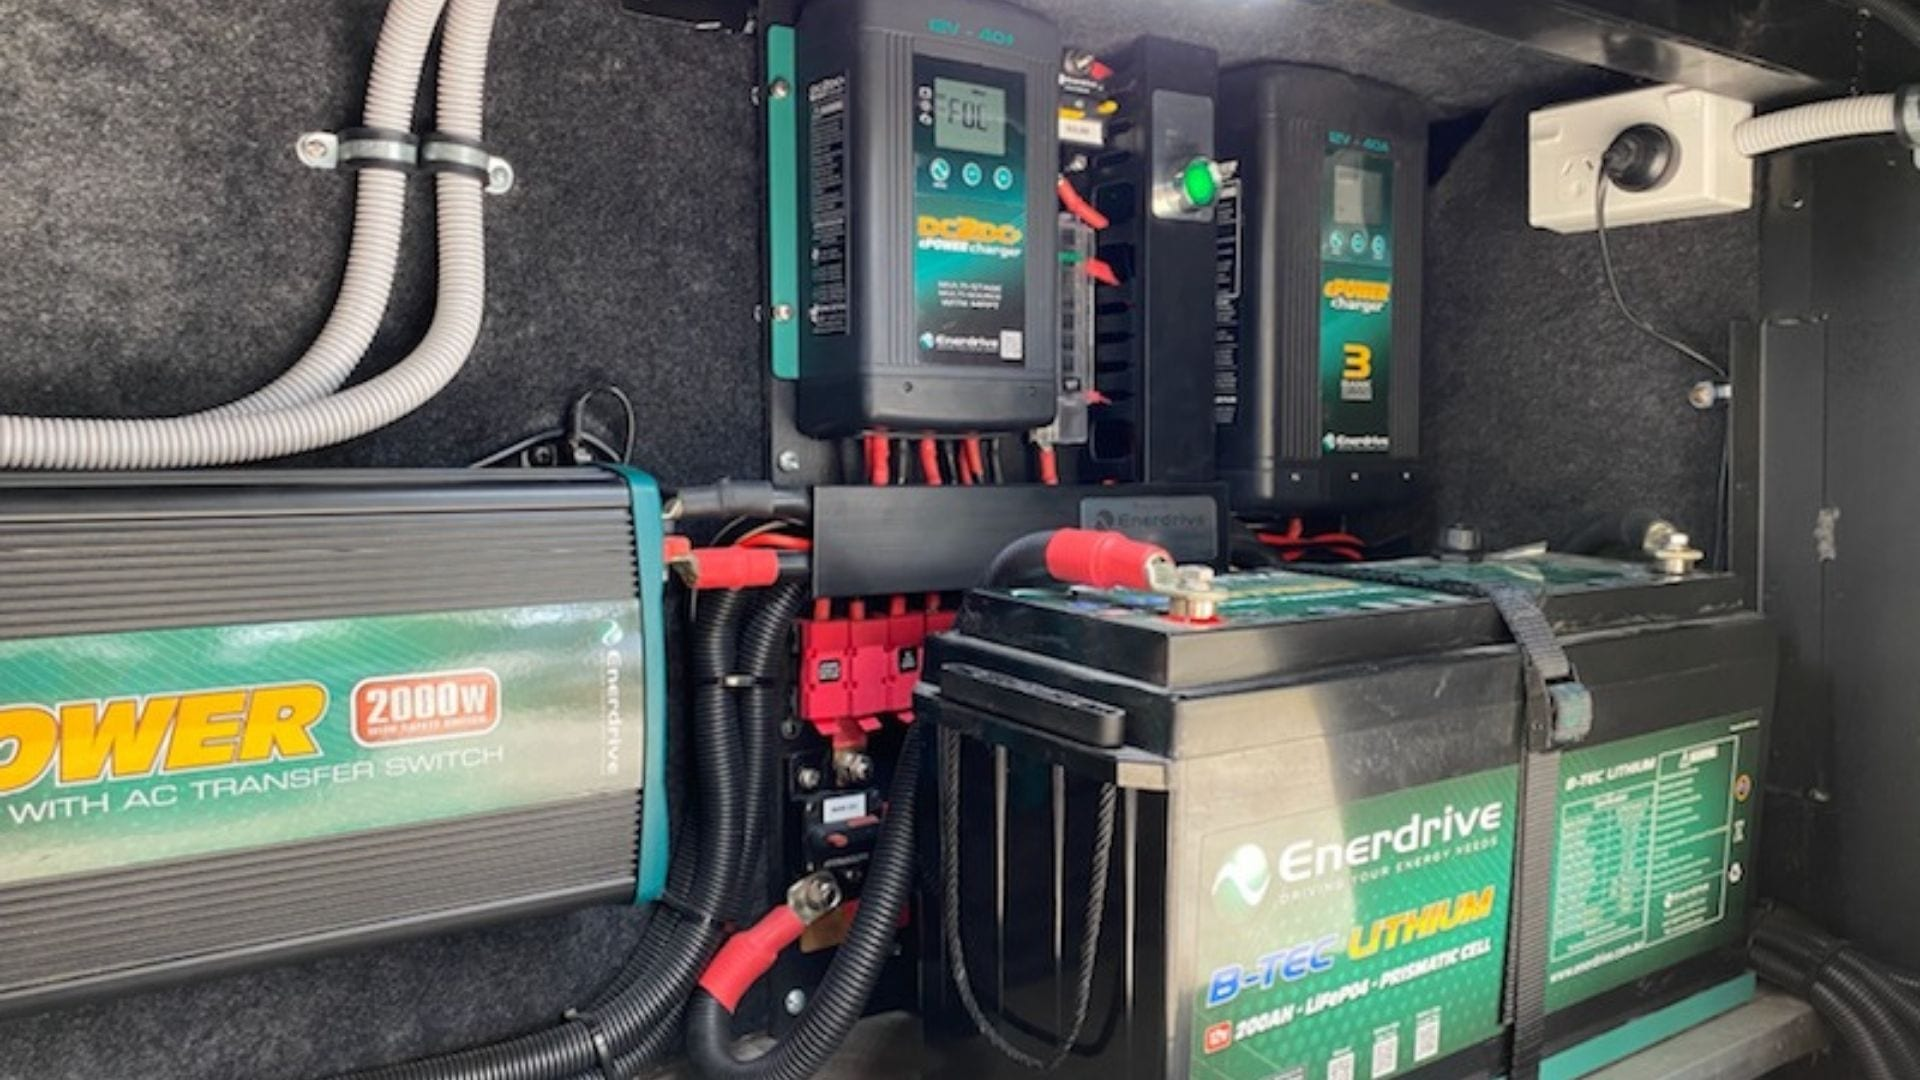 All new Enerdrive battery system